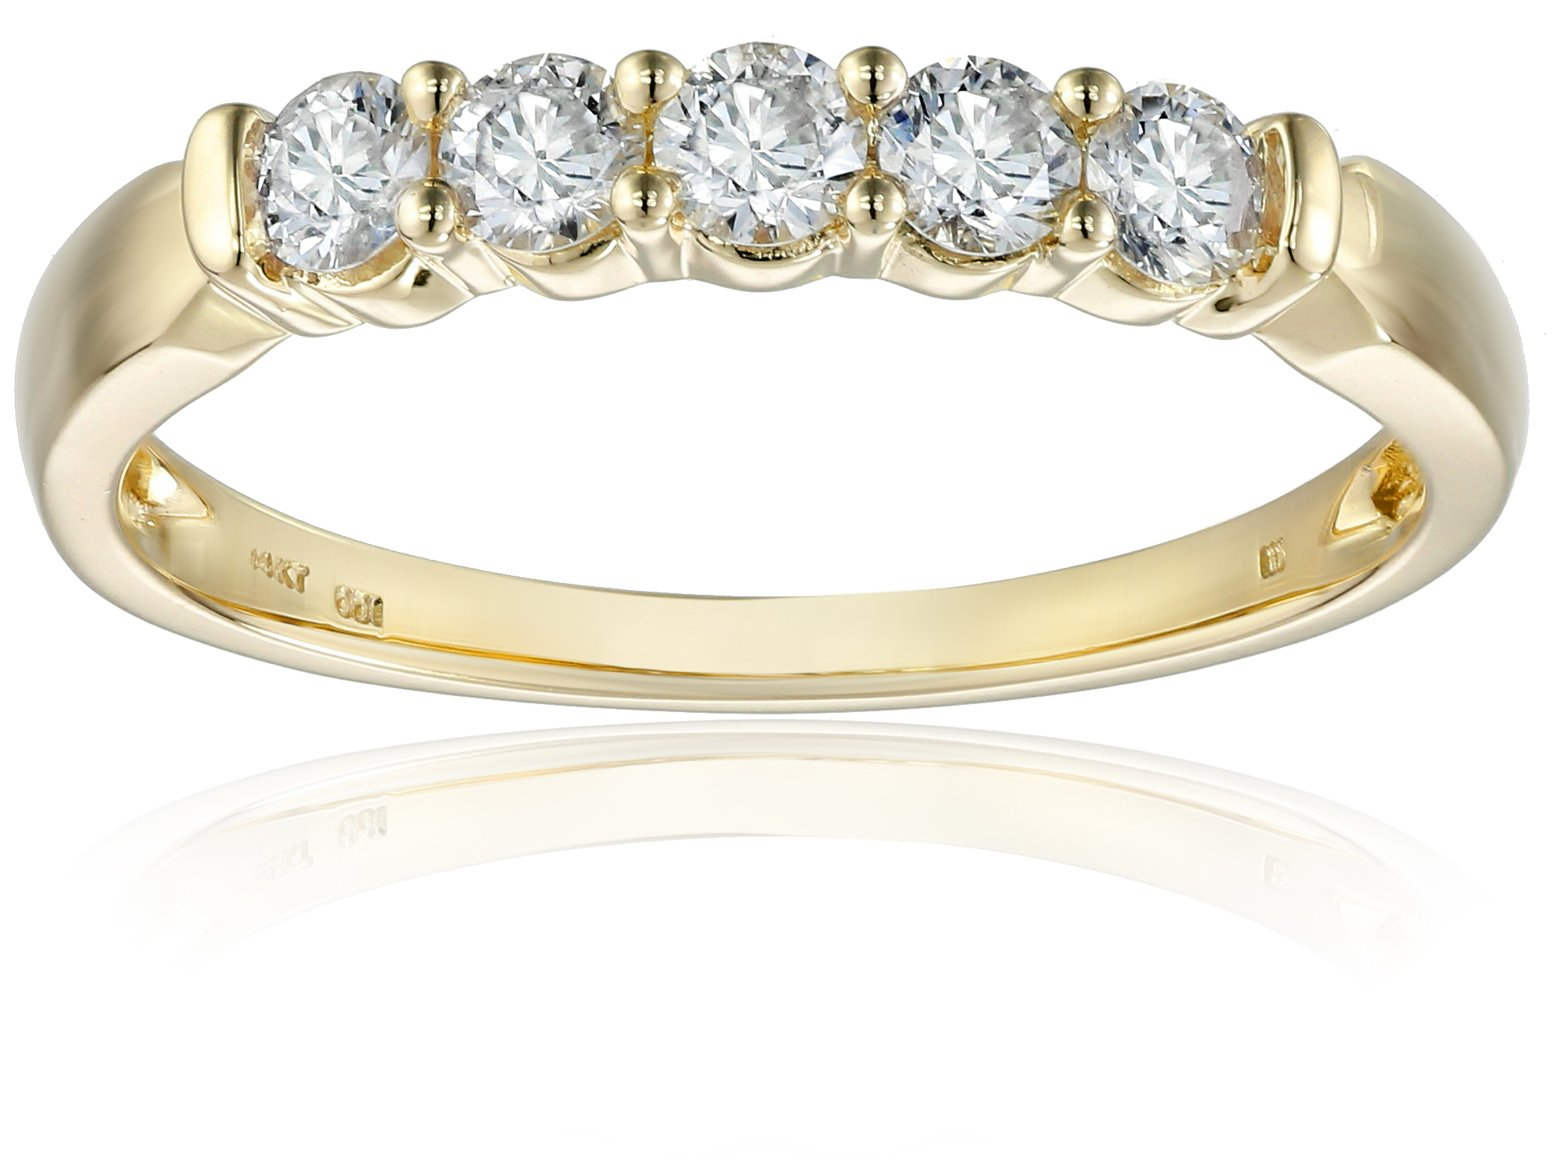 14k Yellow Gold 5-Stone Diamond Anniversary Band (1/2 cttw, H-I Color, I2-I3 Clarity), Size 6